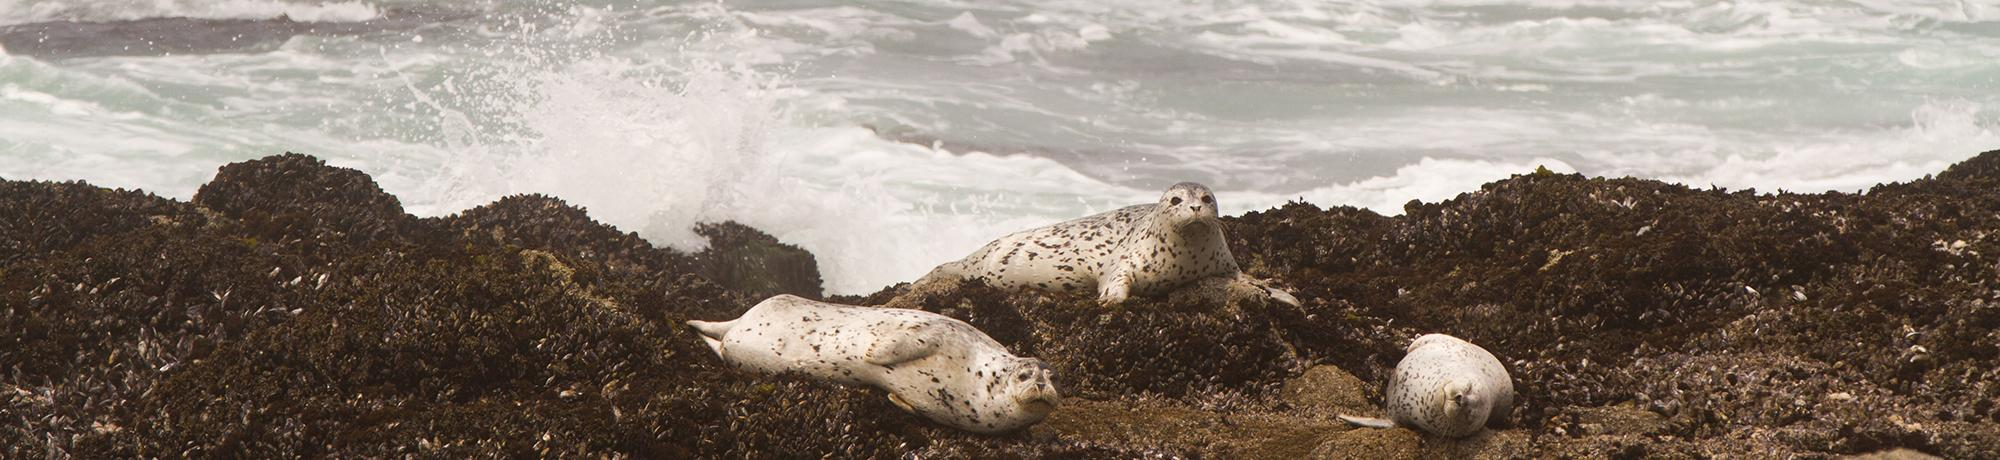 Seals lounge on the rocks at the Bodega Marine Lab